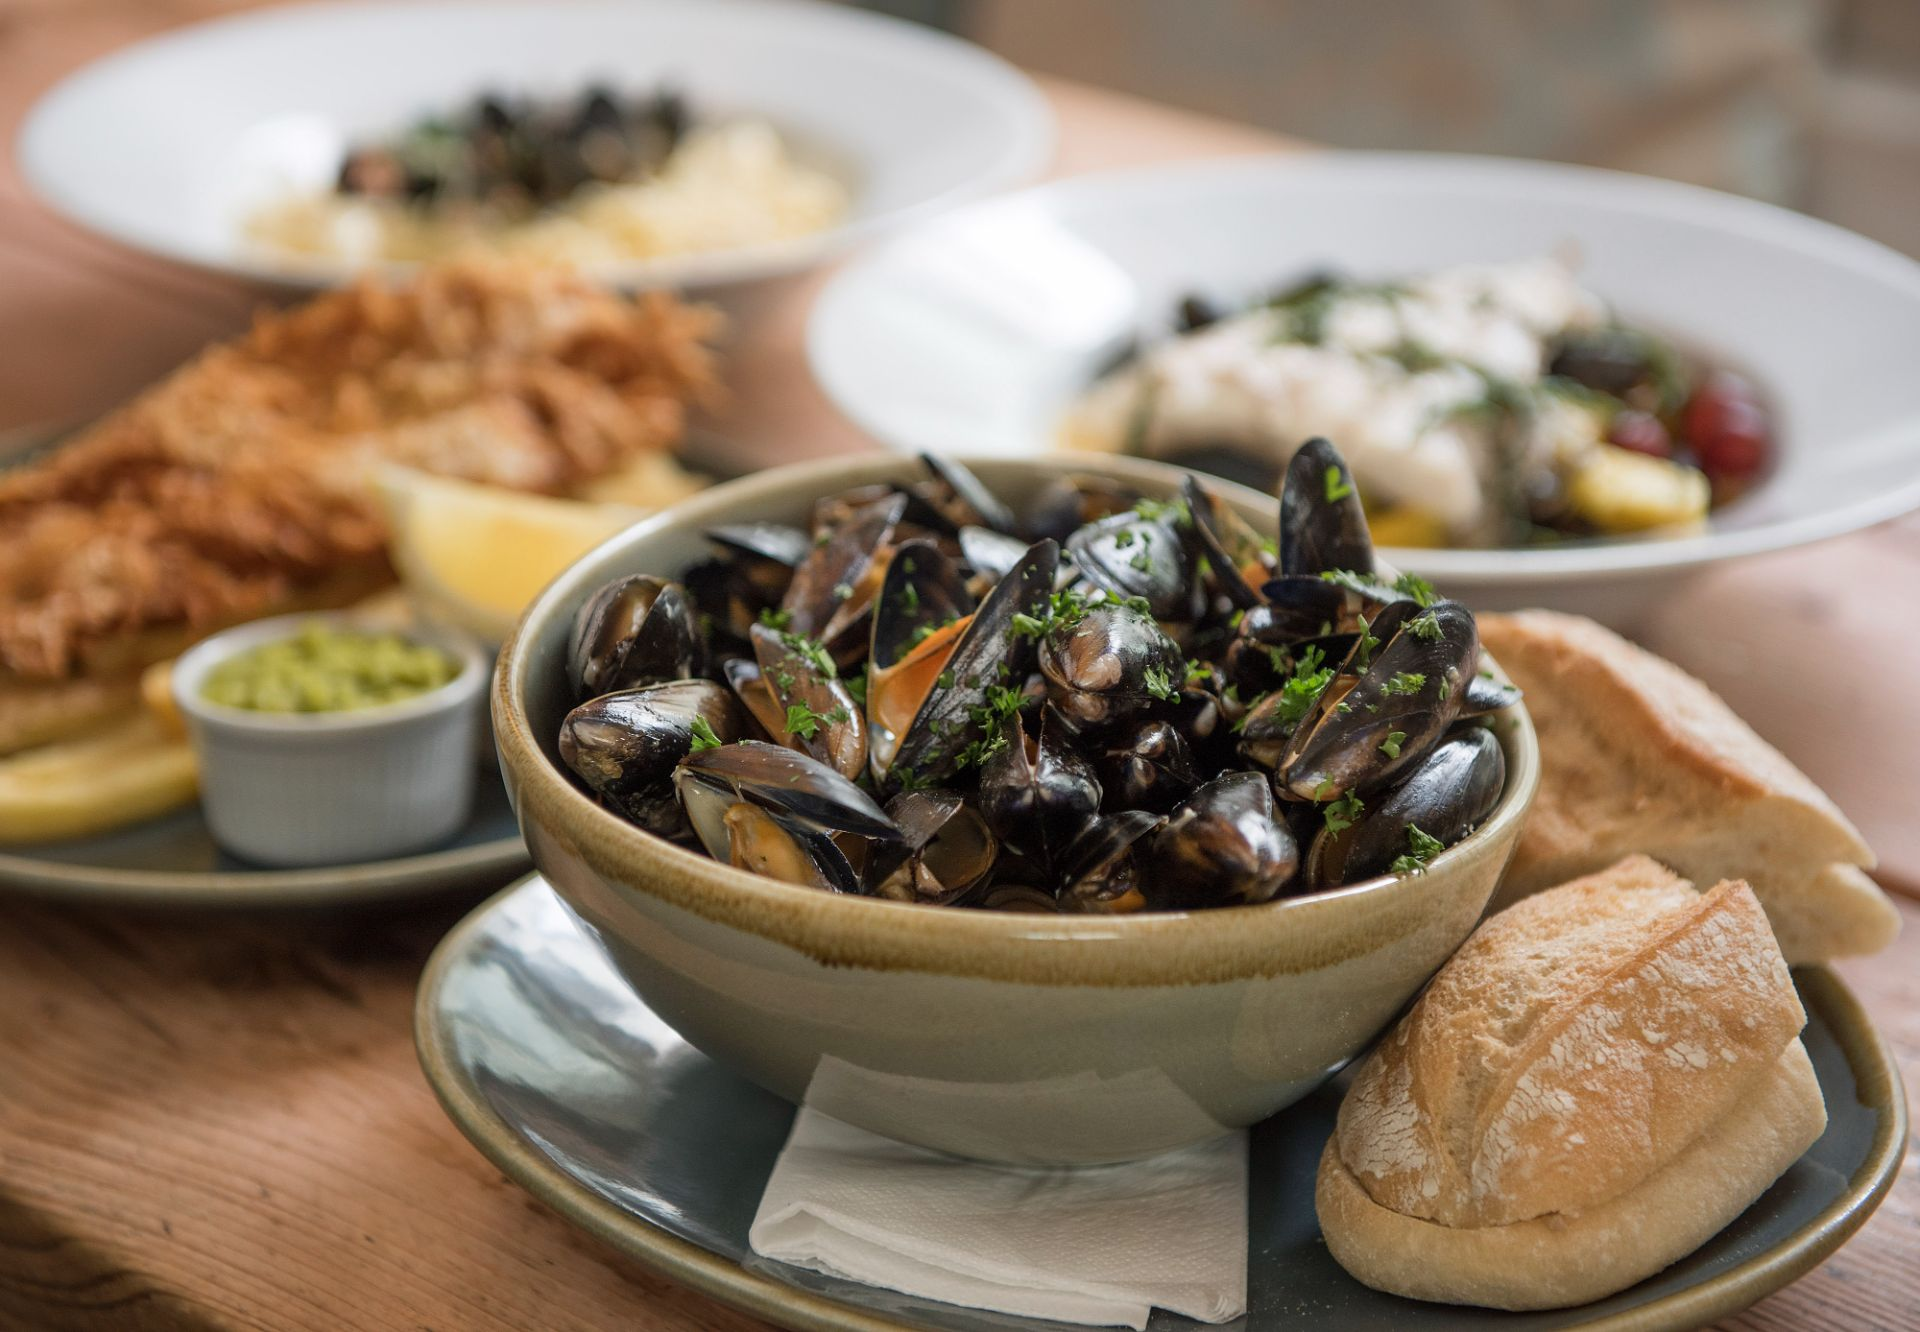 Table-full of freshly prepared food, including mussels and crusty bread